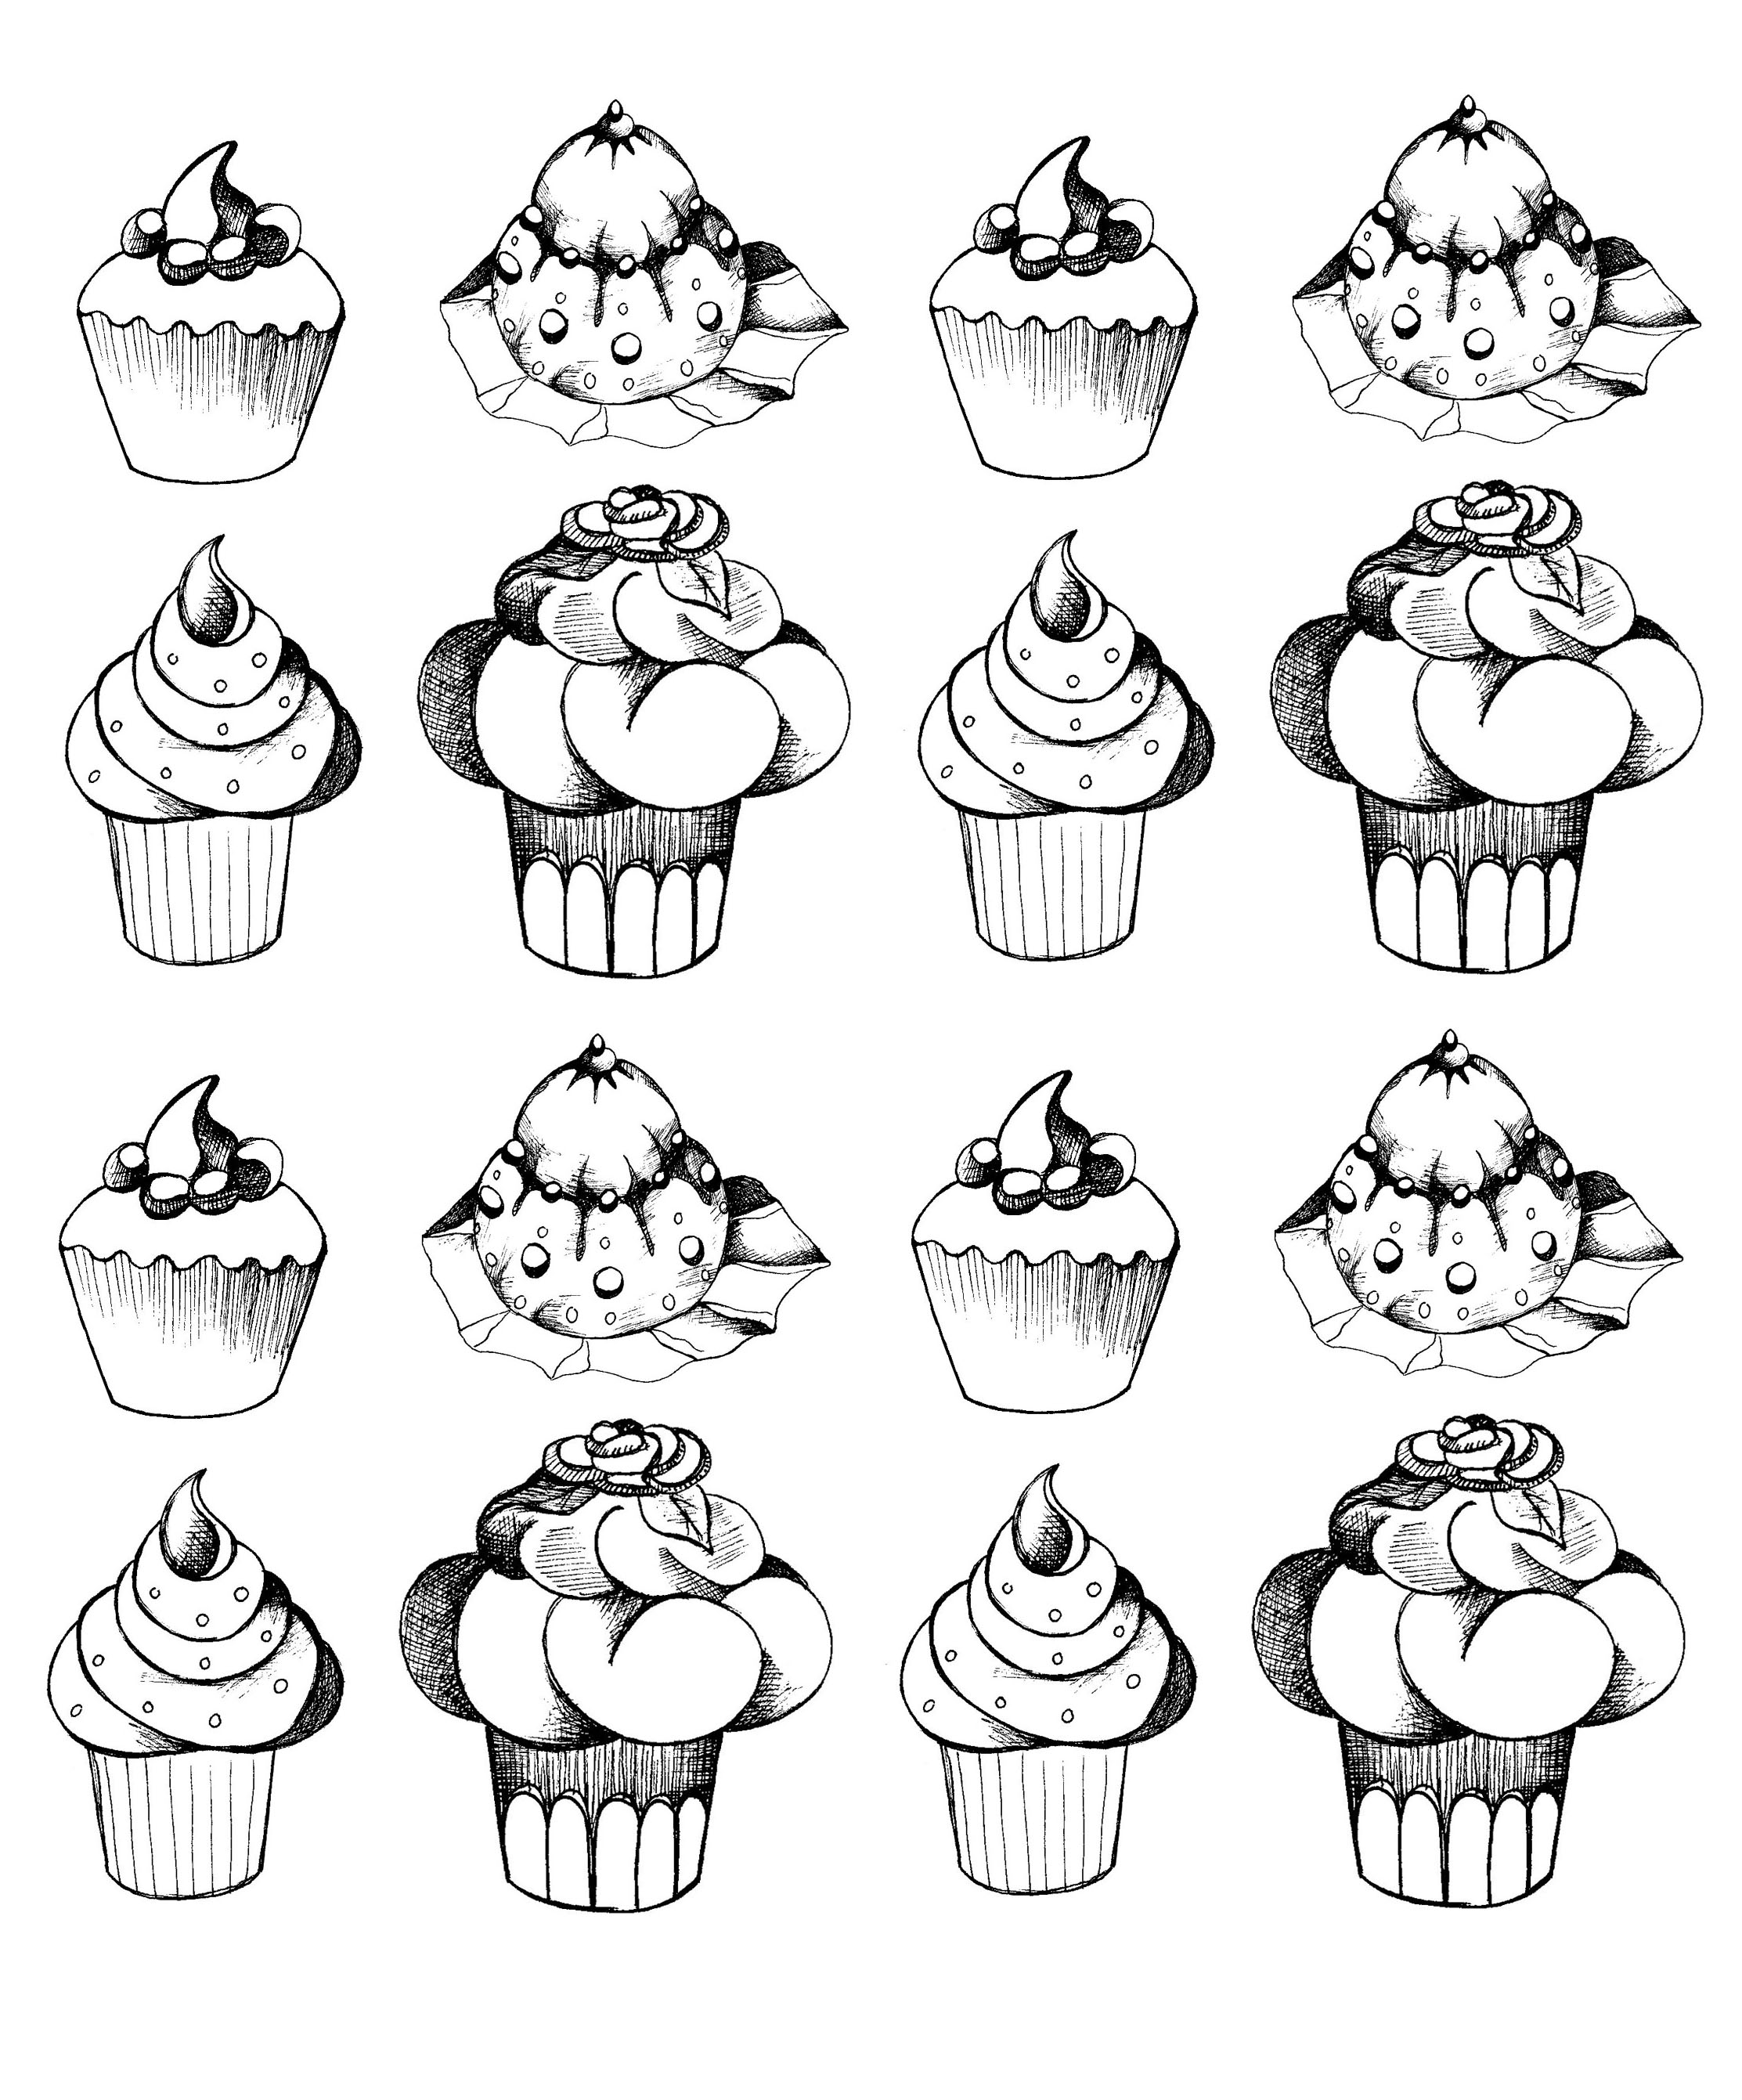 Cup cakes 96747